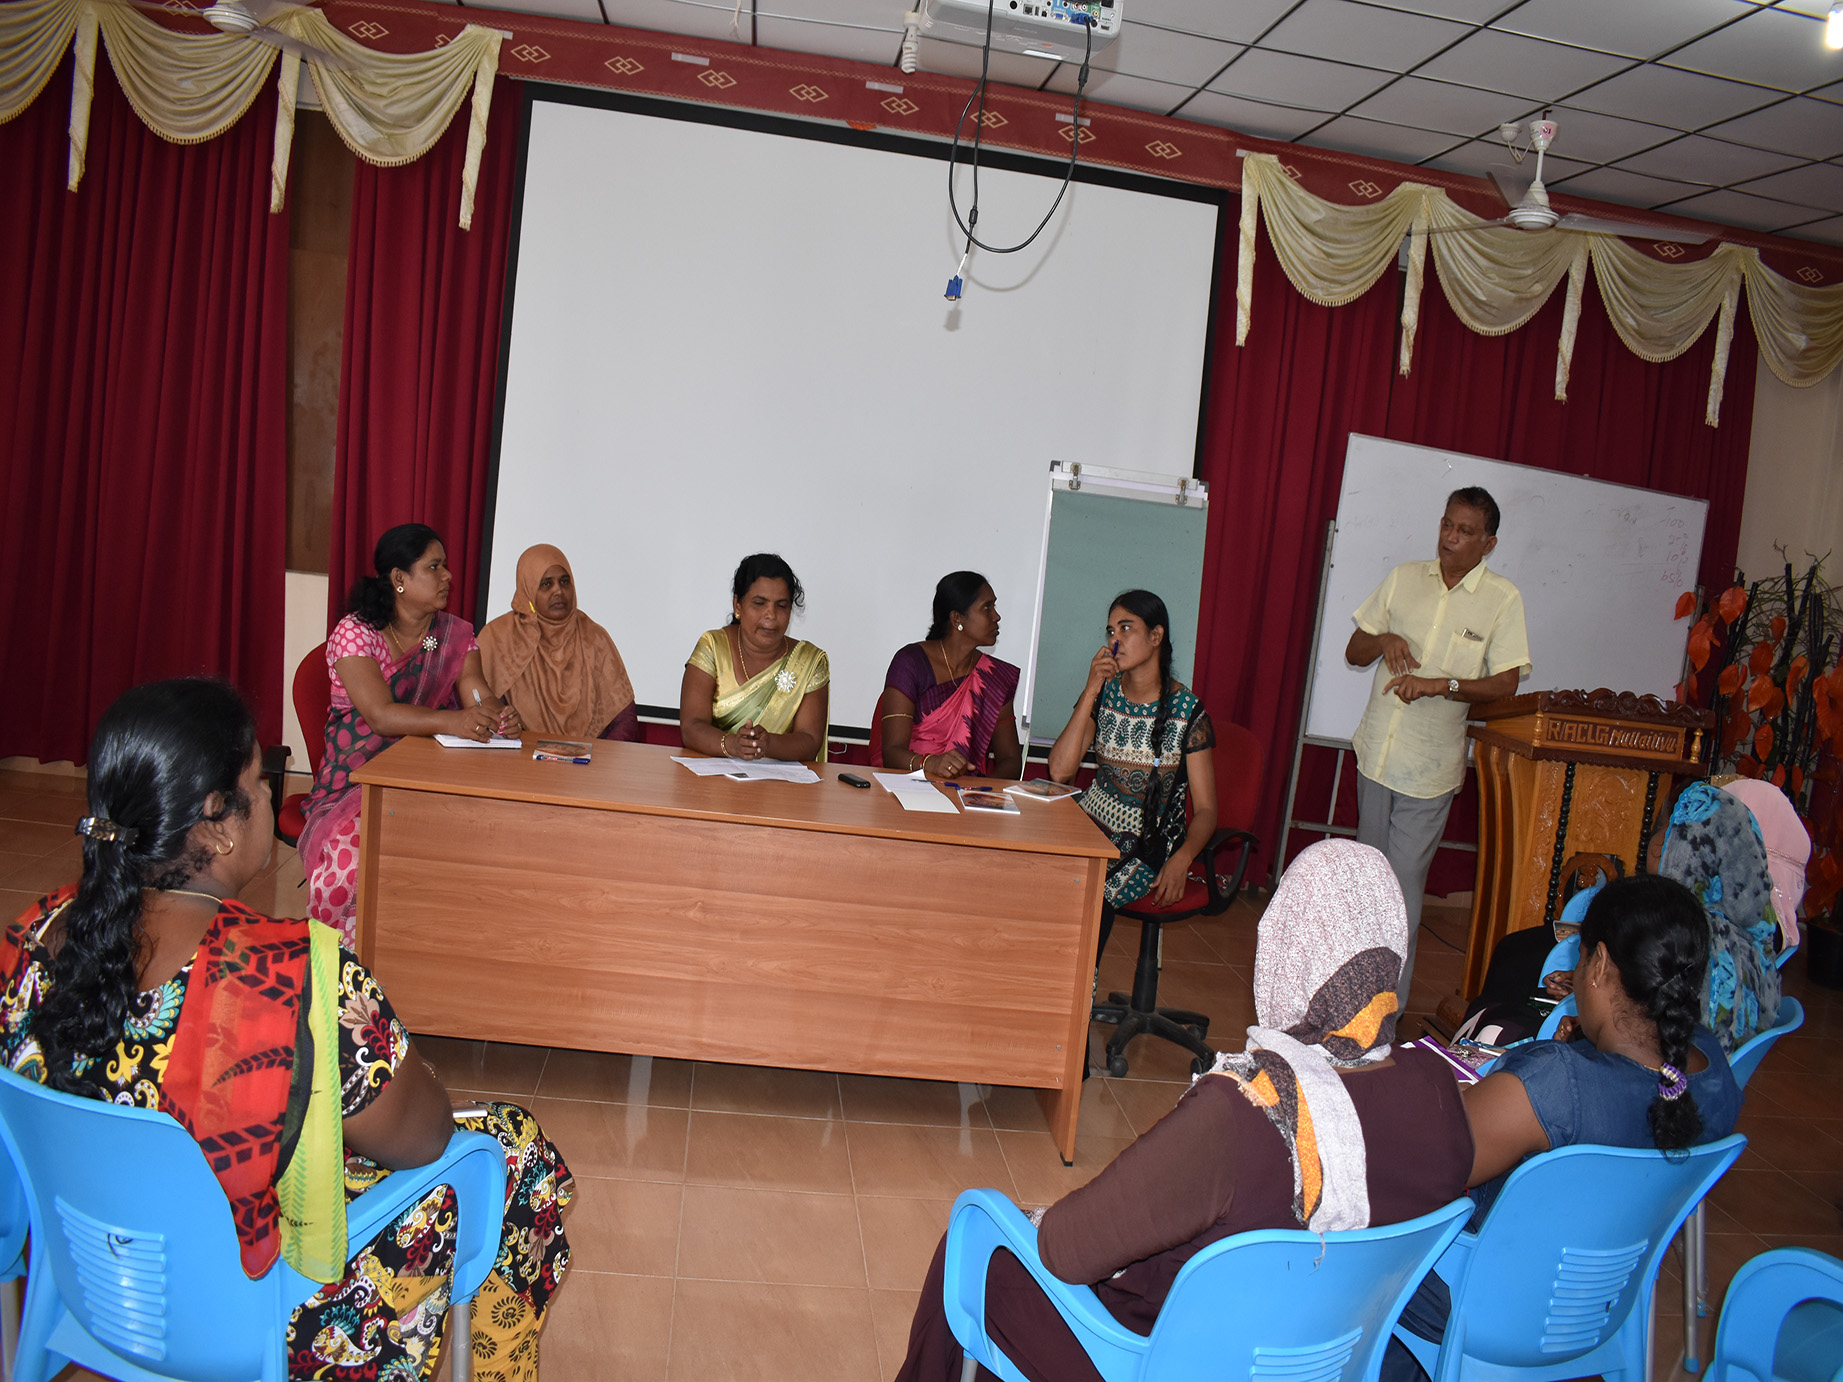 Mullaitivu Women's Cooperative Society (MWDCS), conducted a progress review